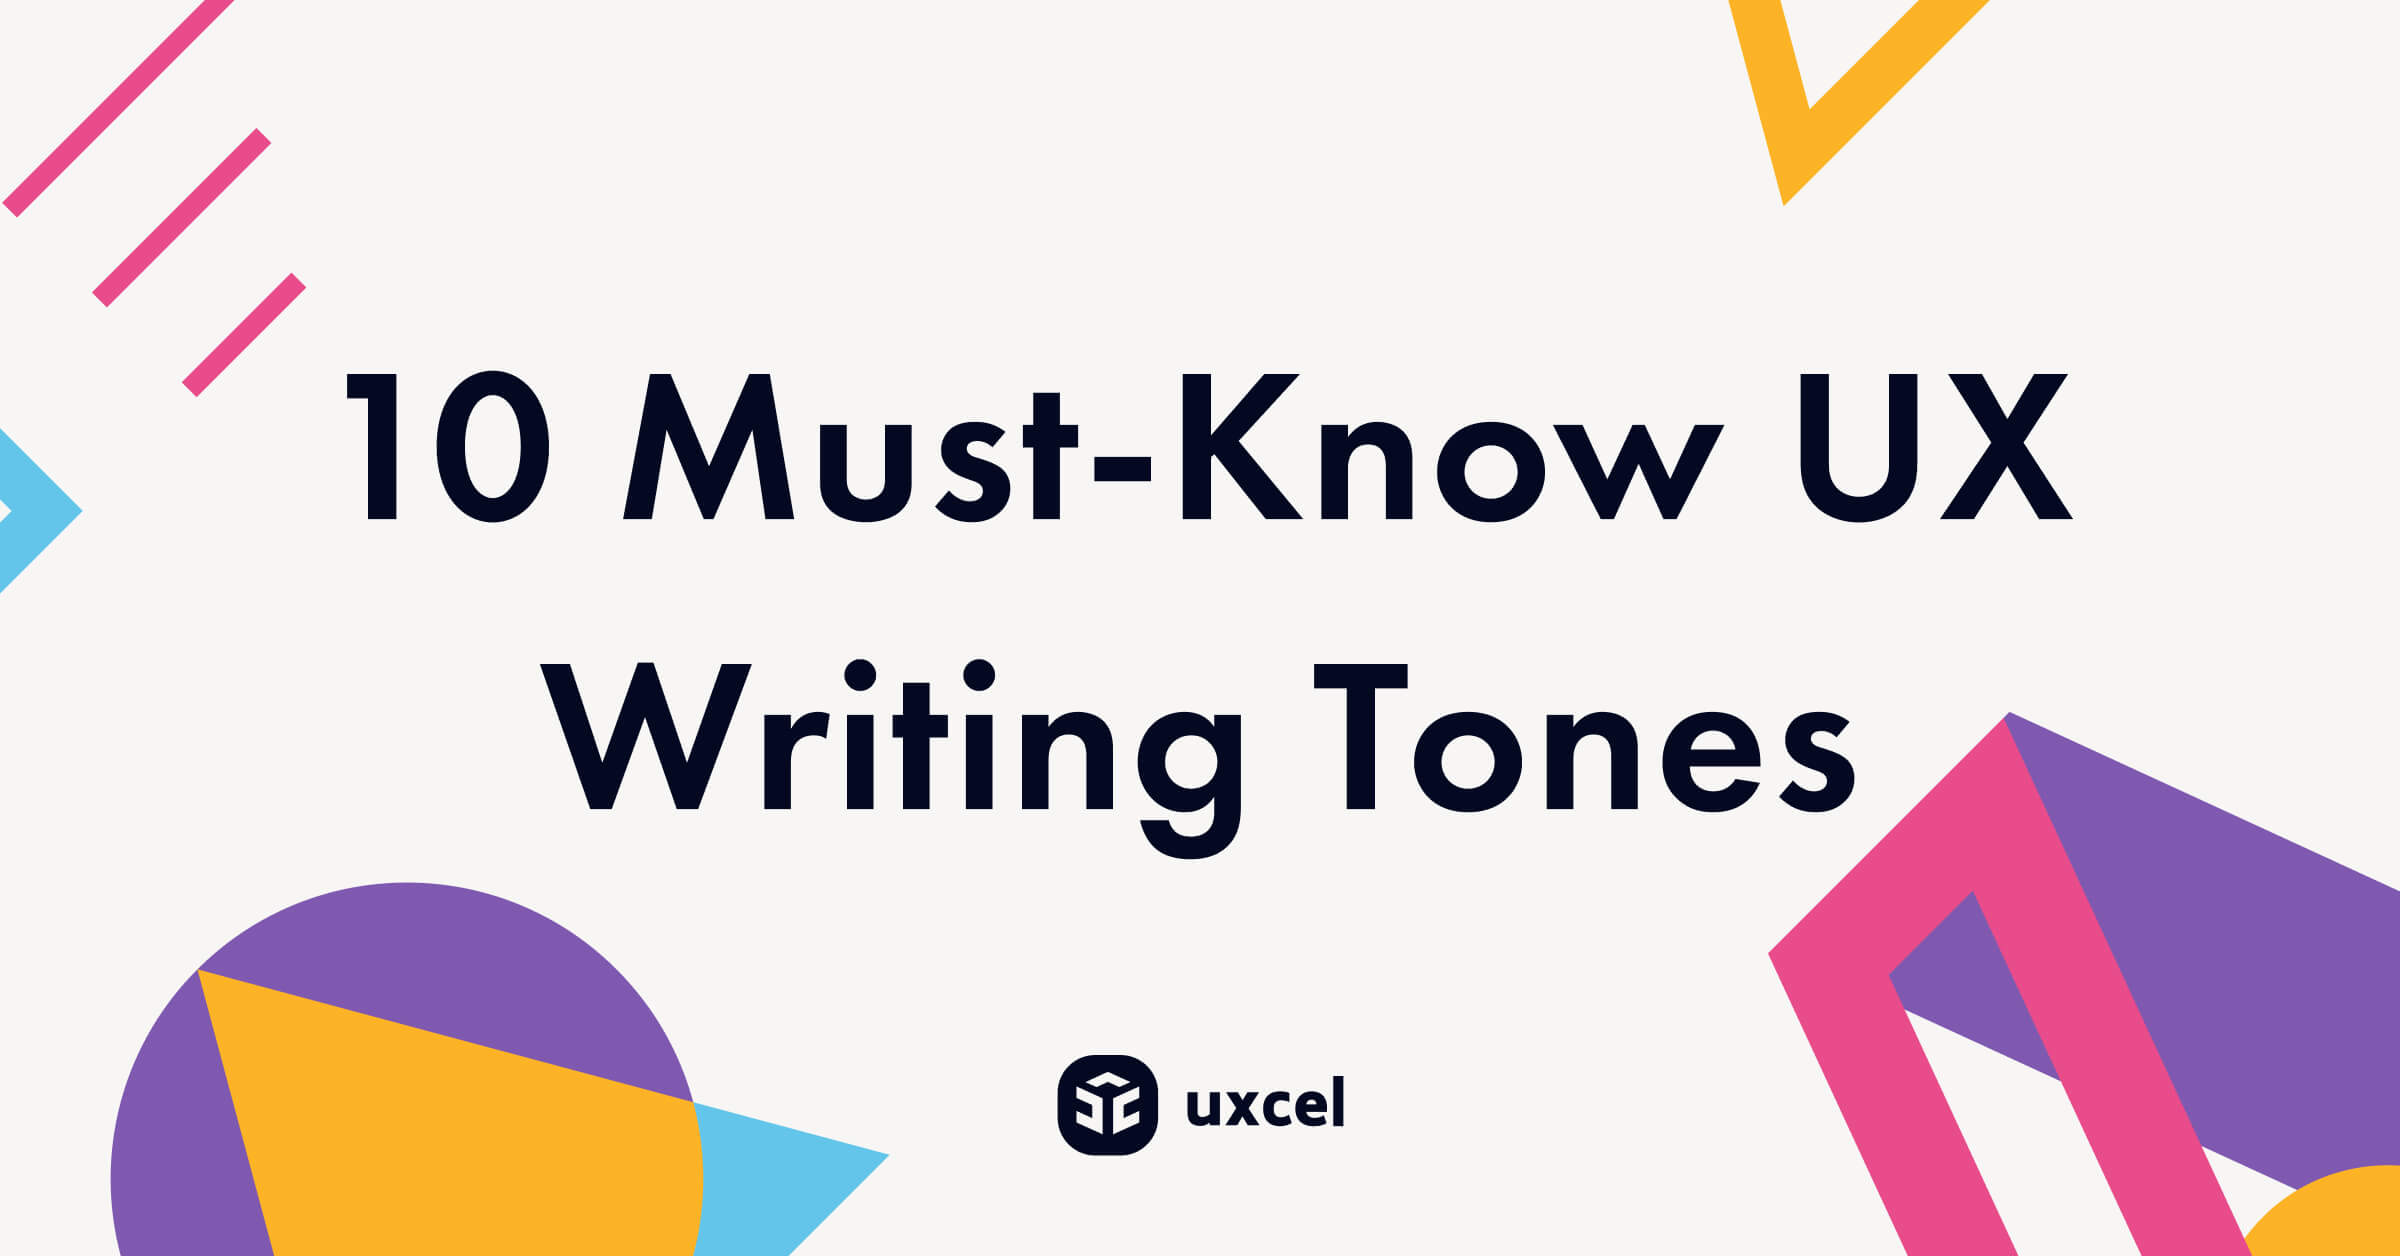 10 Must-Know UX Writing Tones